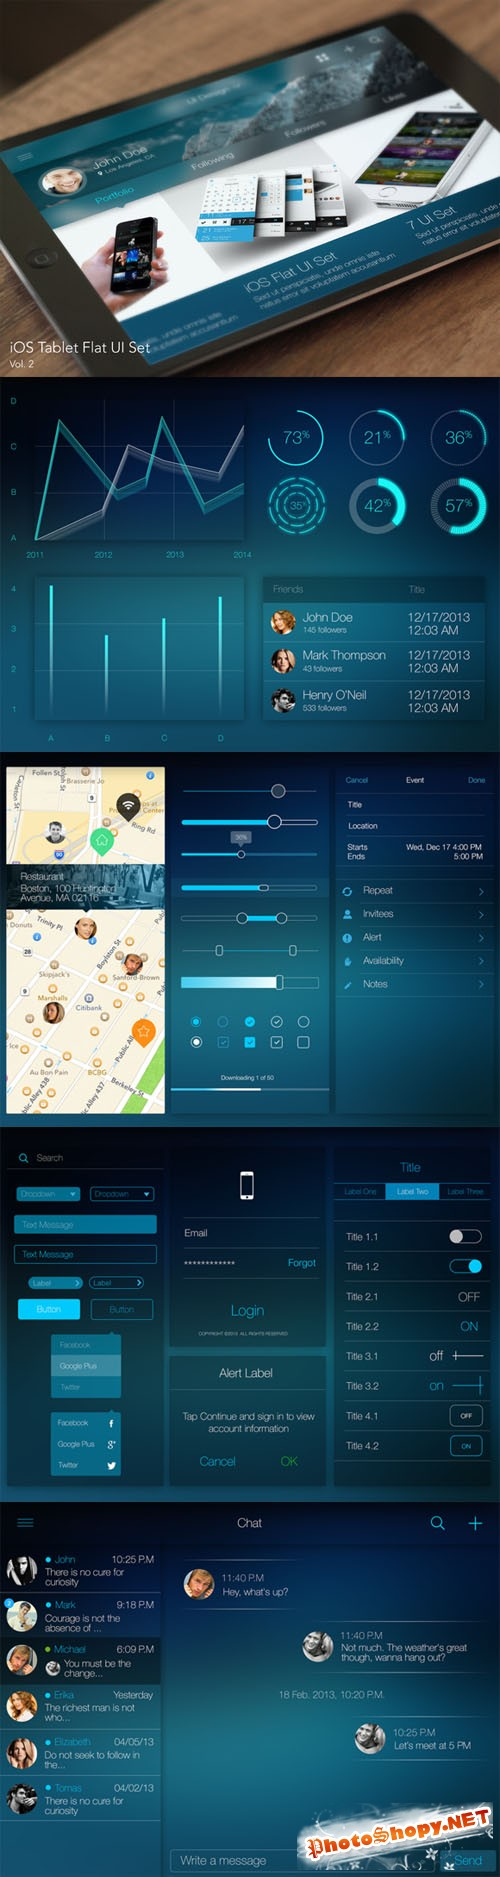 CreativeMarket - iOS Tablet Flat Pad UI Set Vol. 2